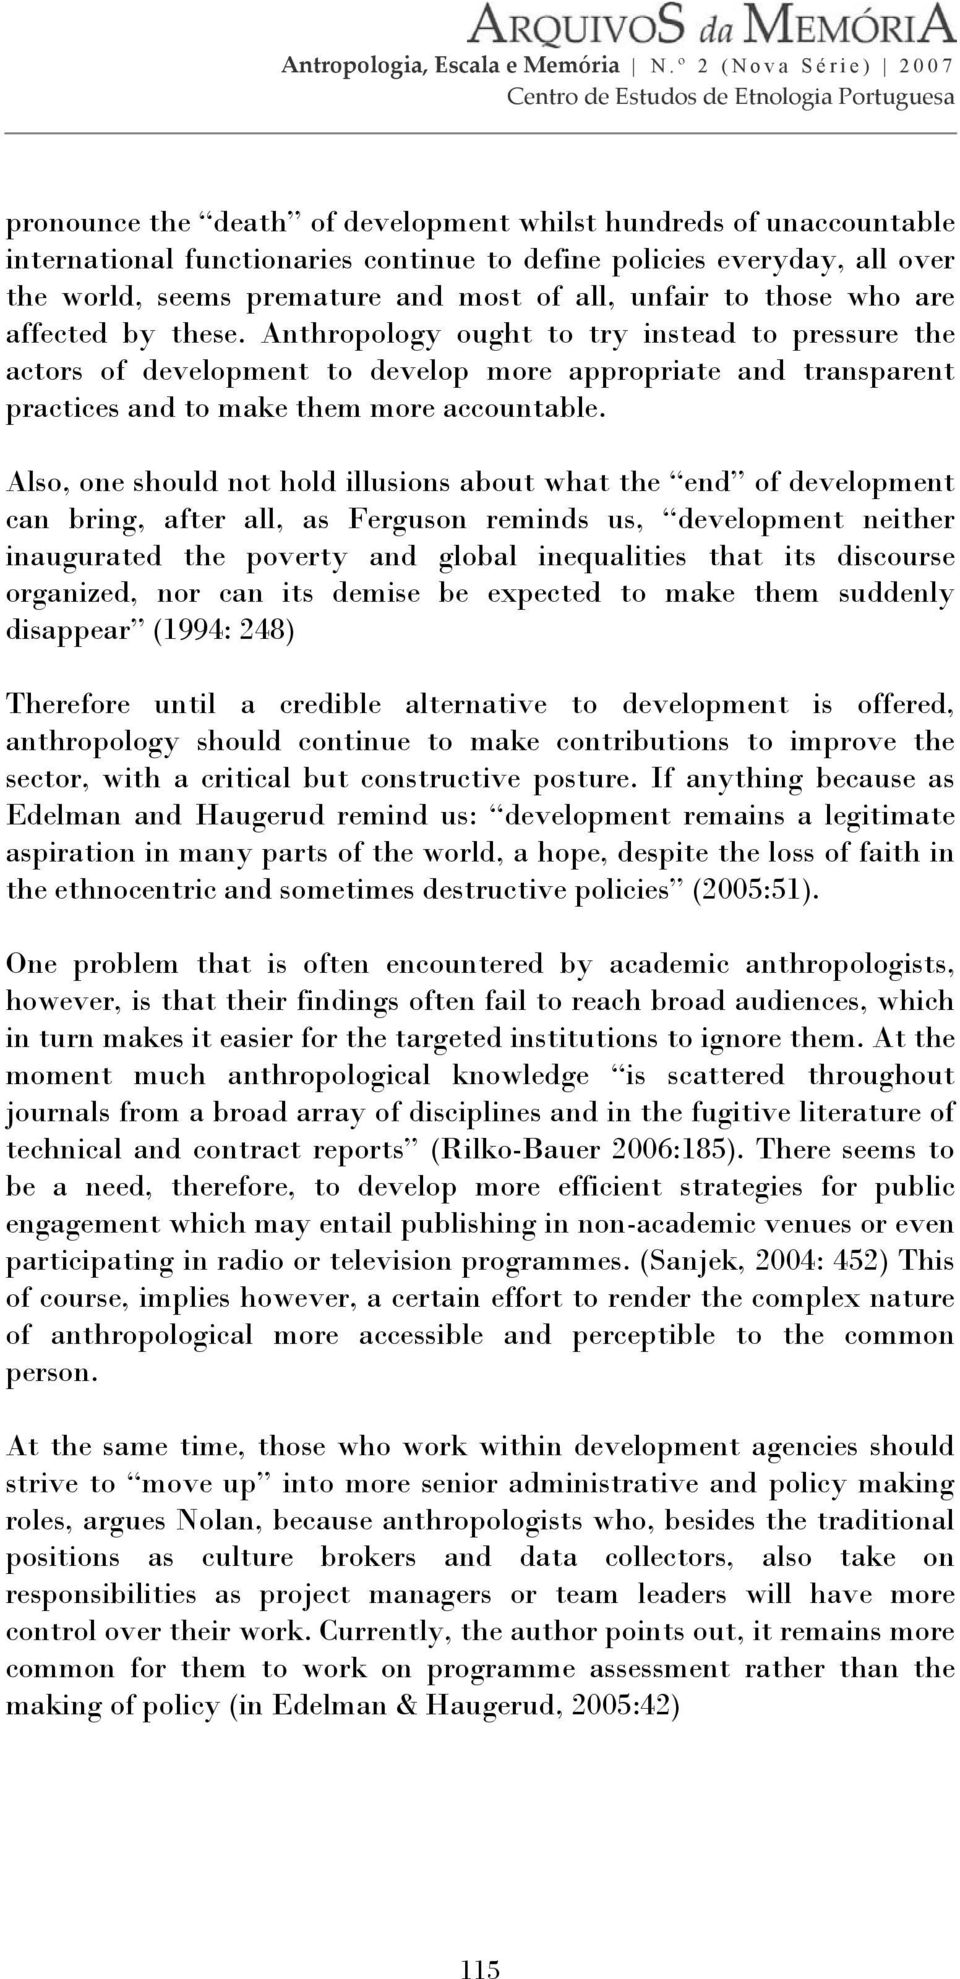 Also, one should not hold illusions about what the end of development can bring, after all, as Ferguson reminds us, development neither inaugurated the poverty and global inequalities that its